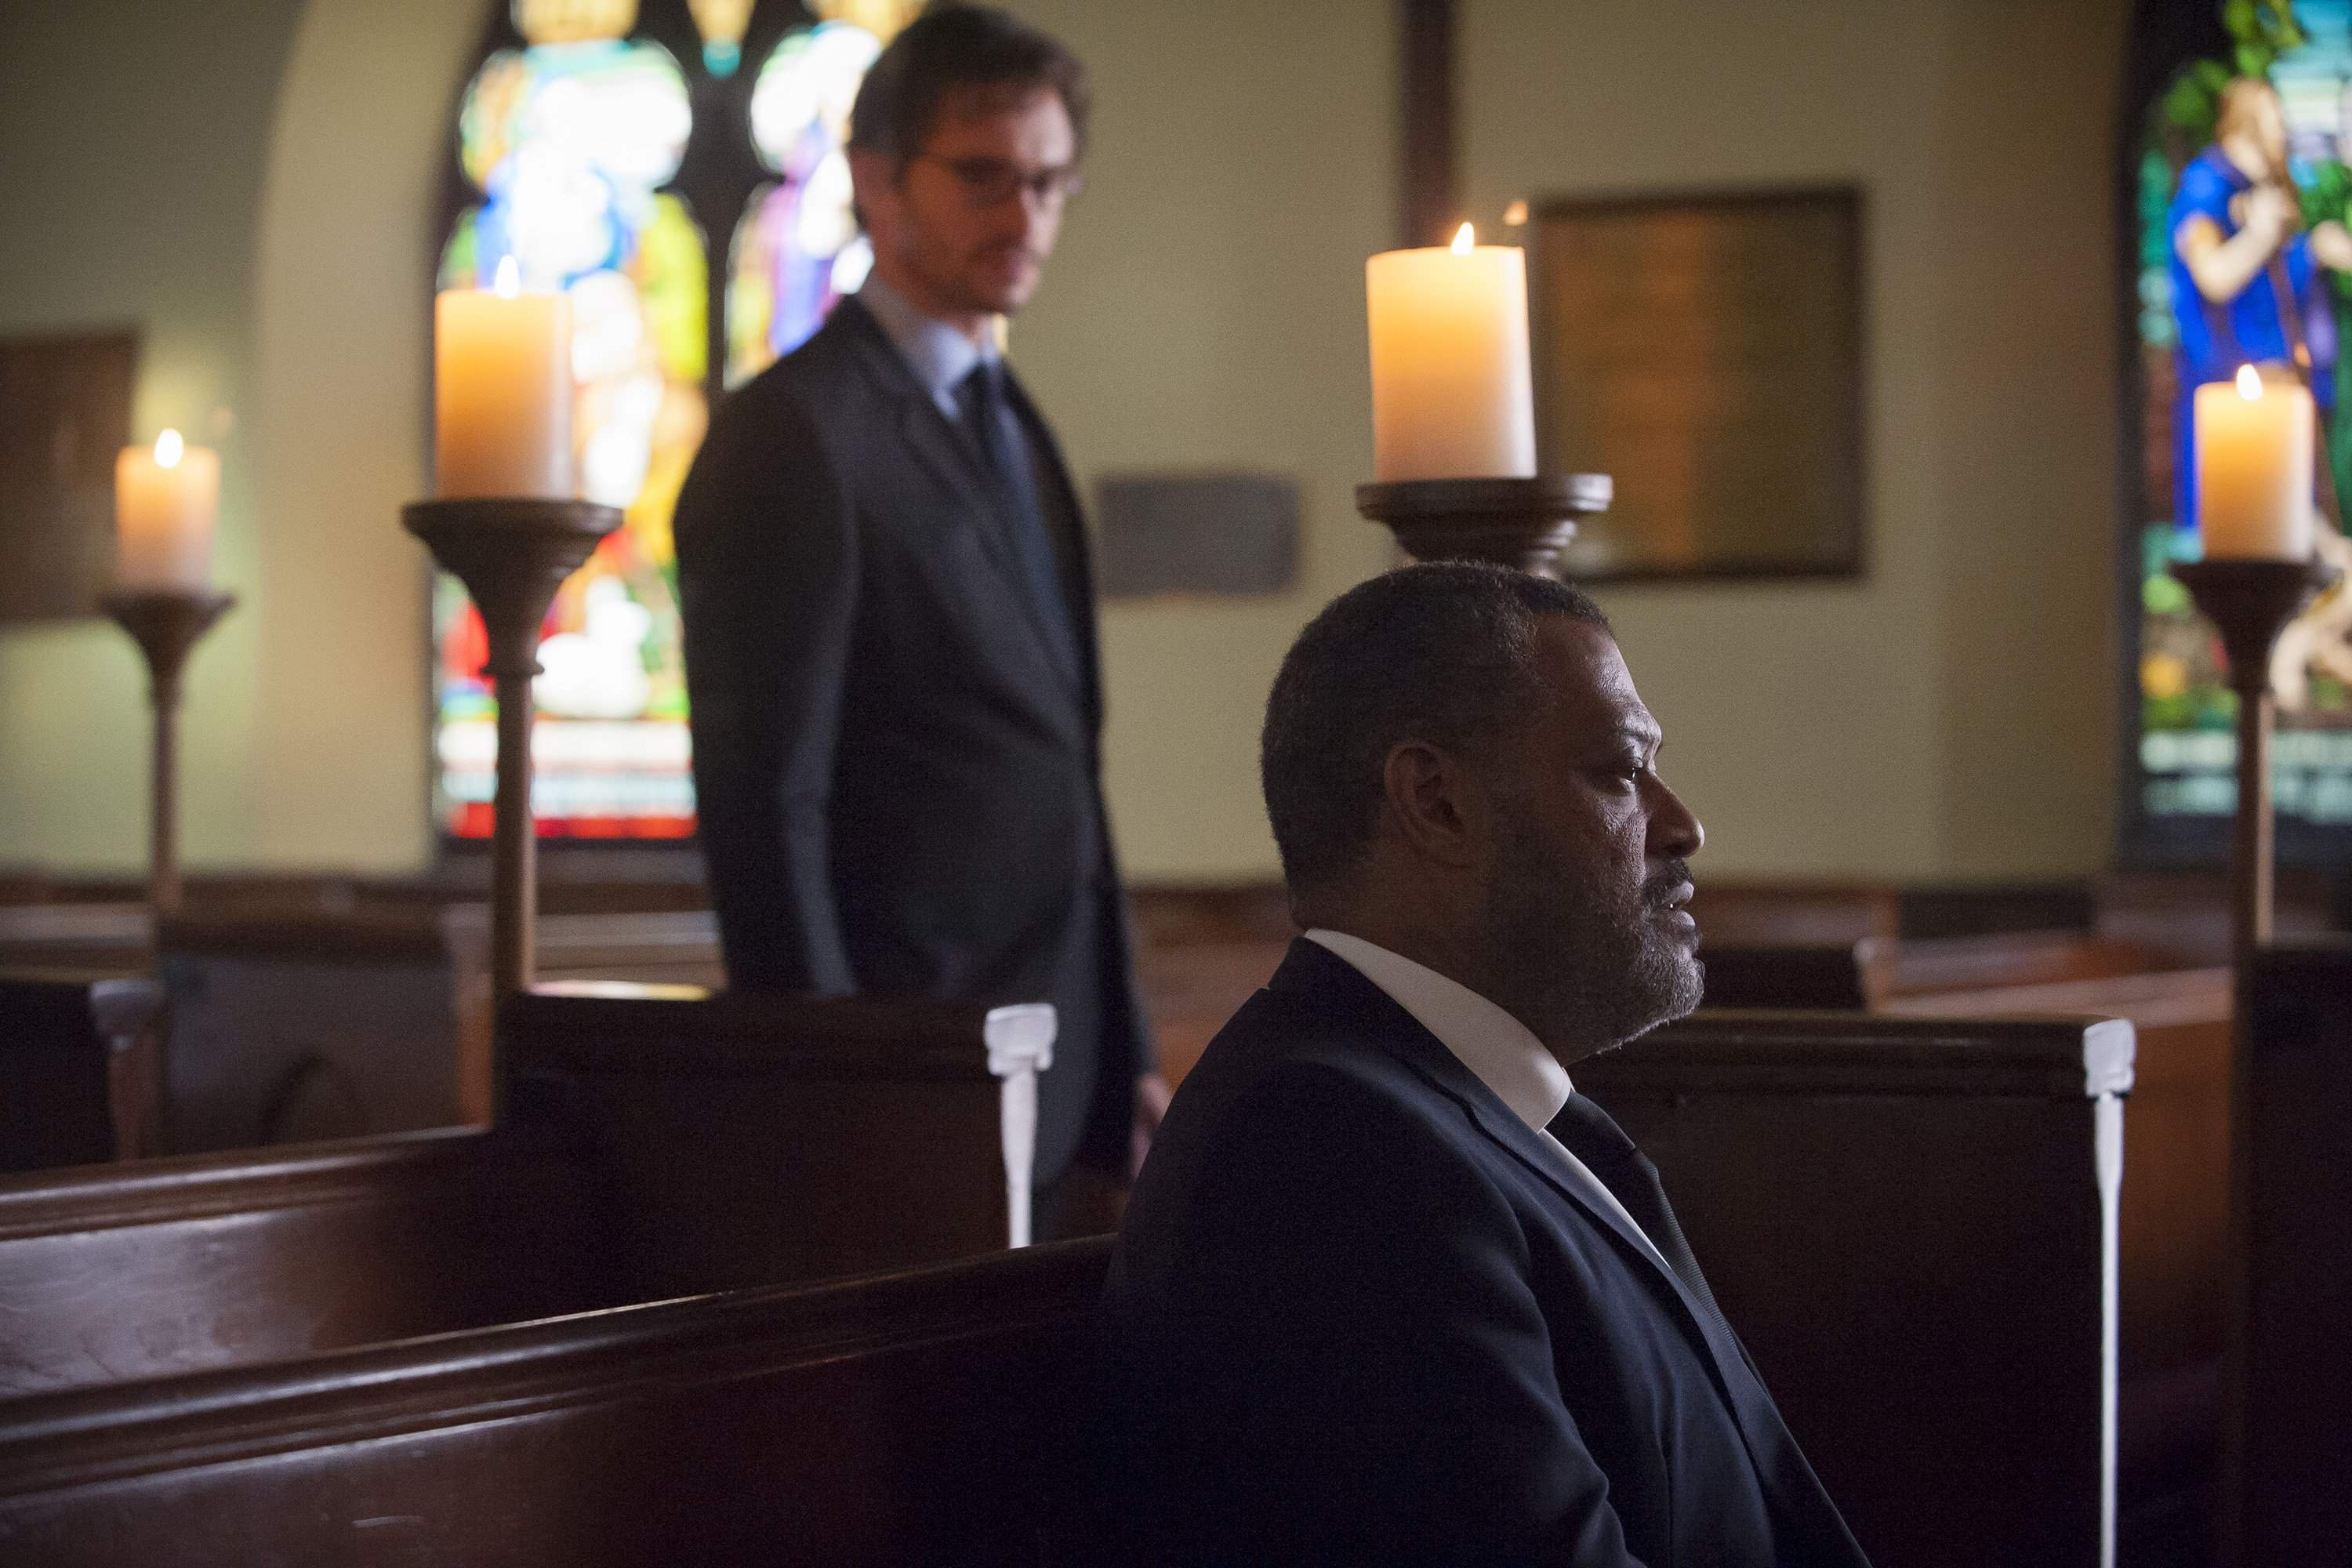 Will visits Jack in church after the death of his wife Bella